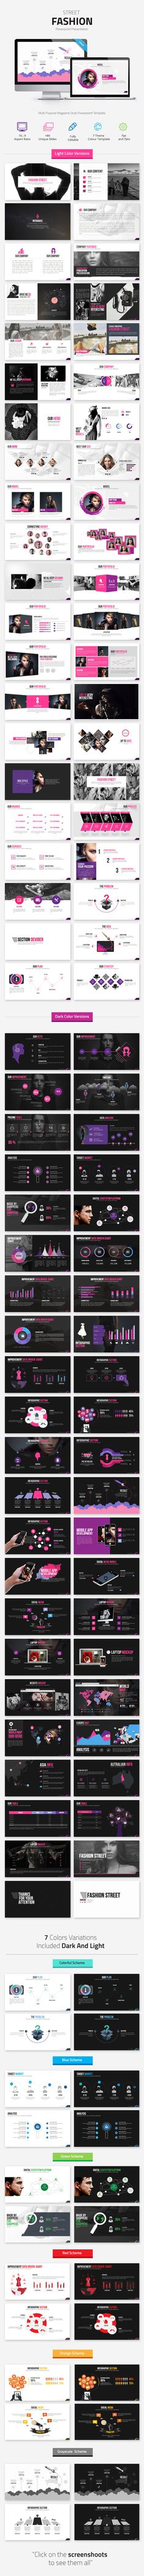 Fashion Powerpoint Presentation Template #powerpoint #powerpointtemplate Download: http://graphicriver.net/item/fashion-powerpoint-presentation/10436329?ref=ksioks